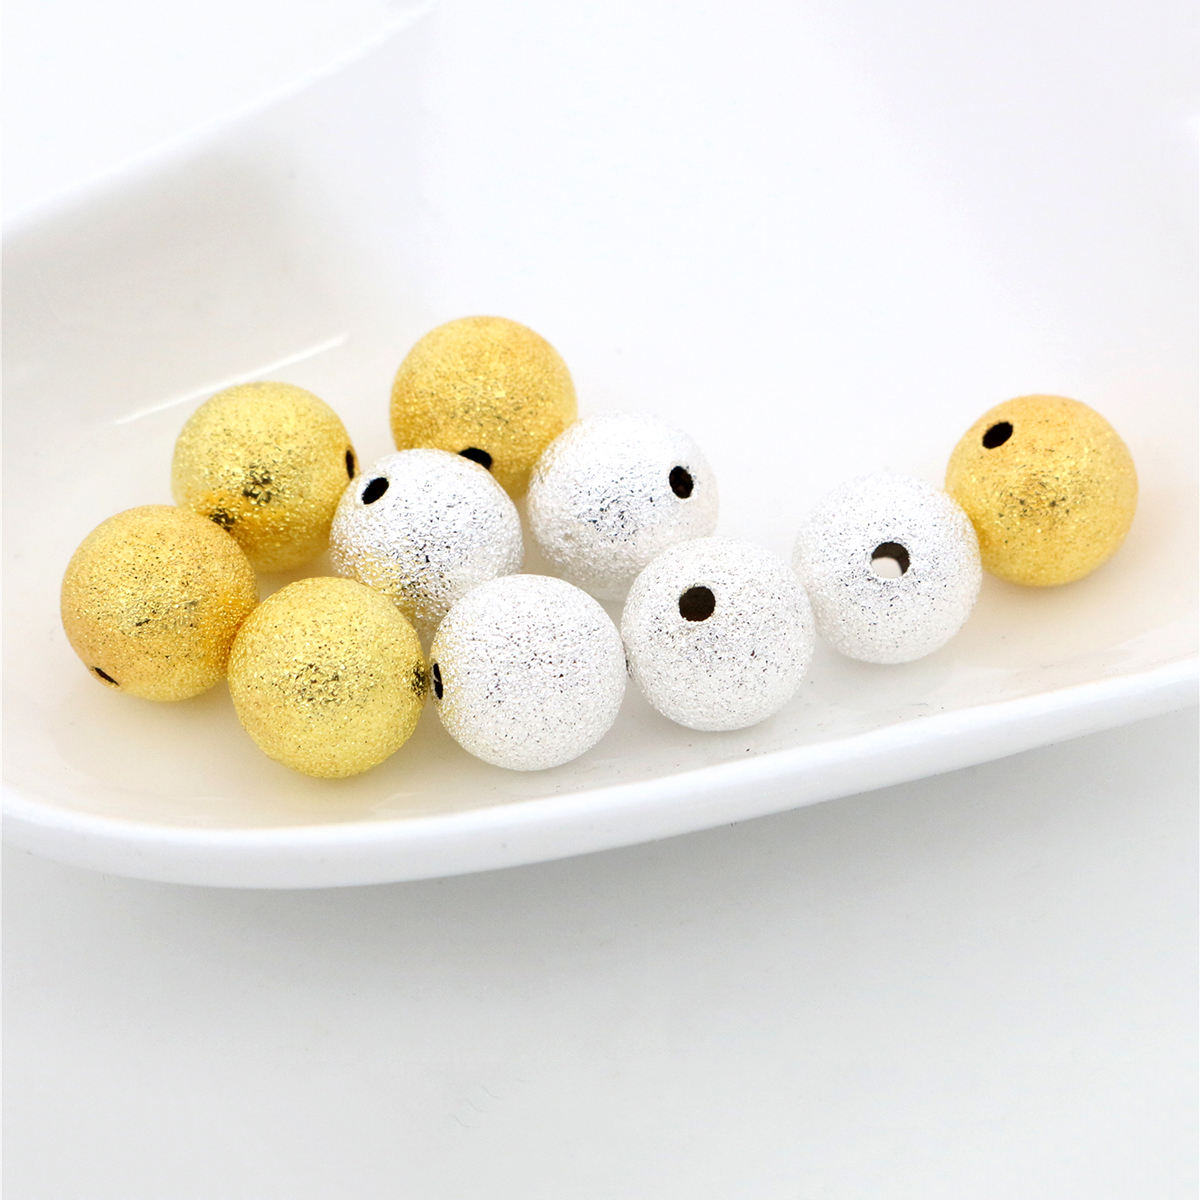 50pcs/Lot 6/8/10mm Silver Plated Gold Color Round Spacer Beads Frosted Ball End Seed Beads For Necklace Bracelet Jewelry Making